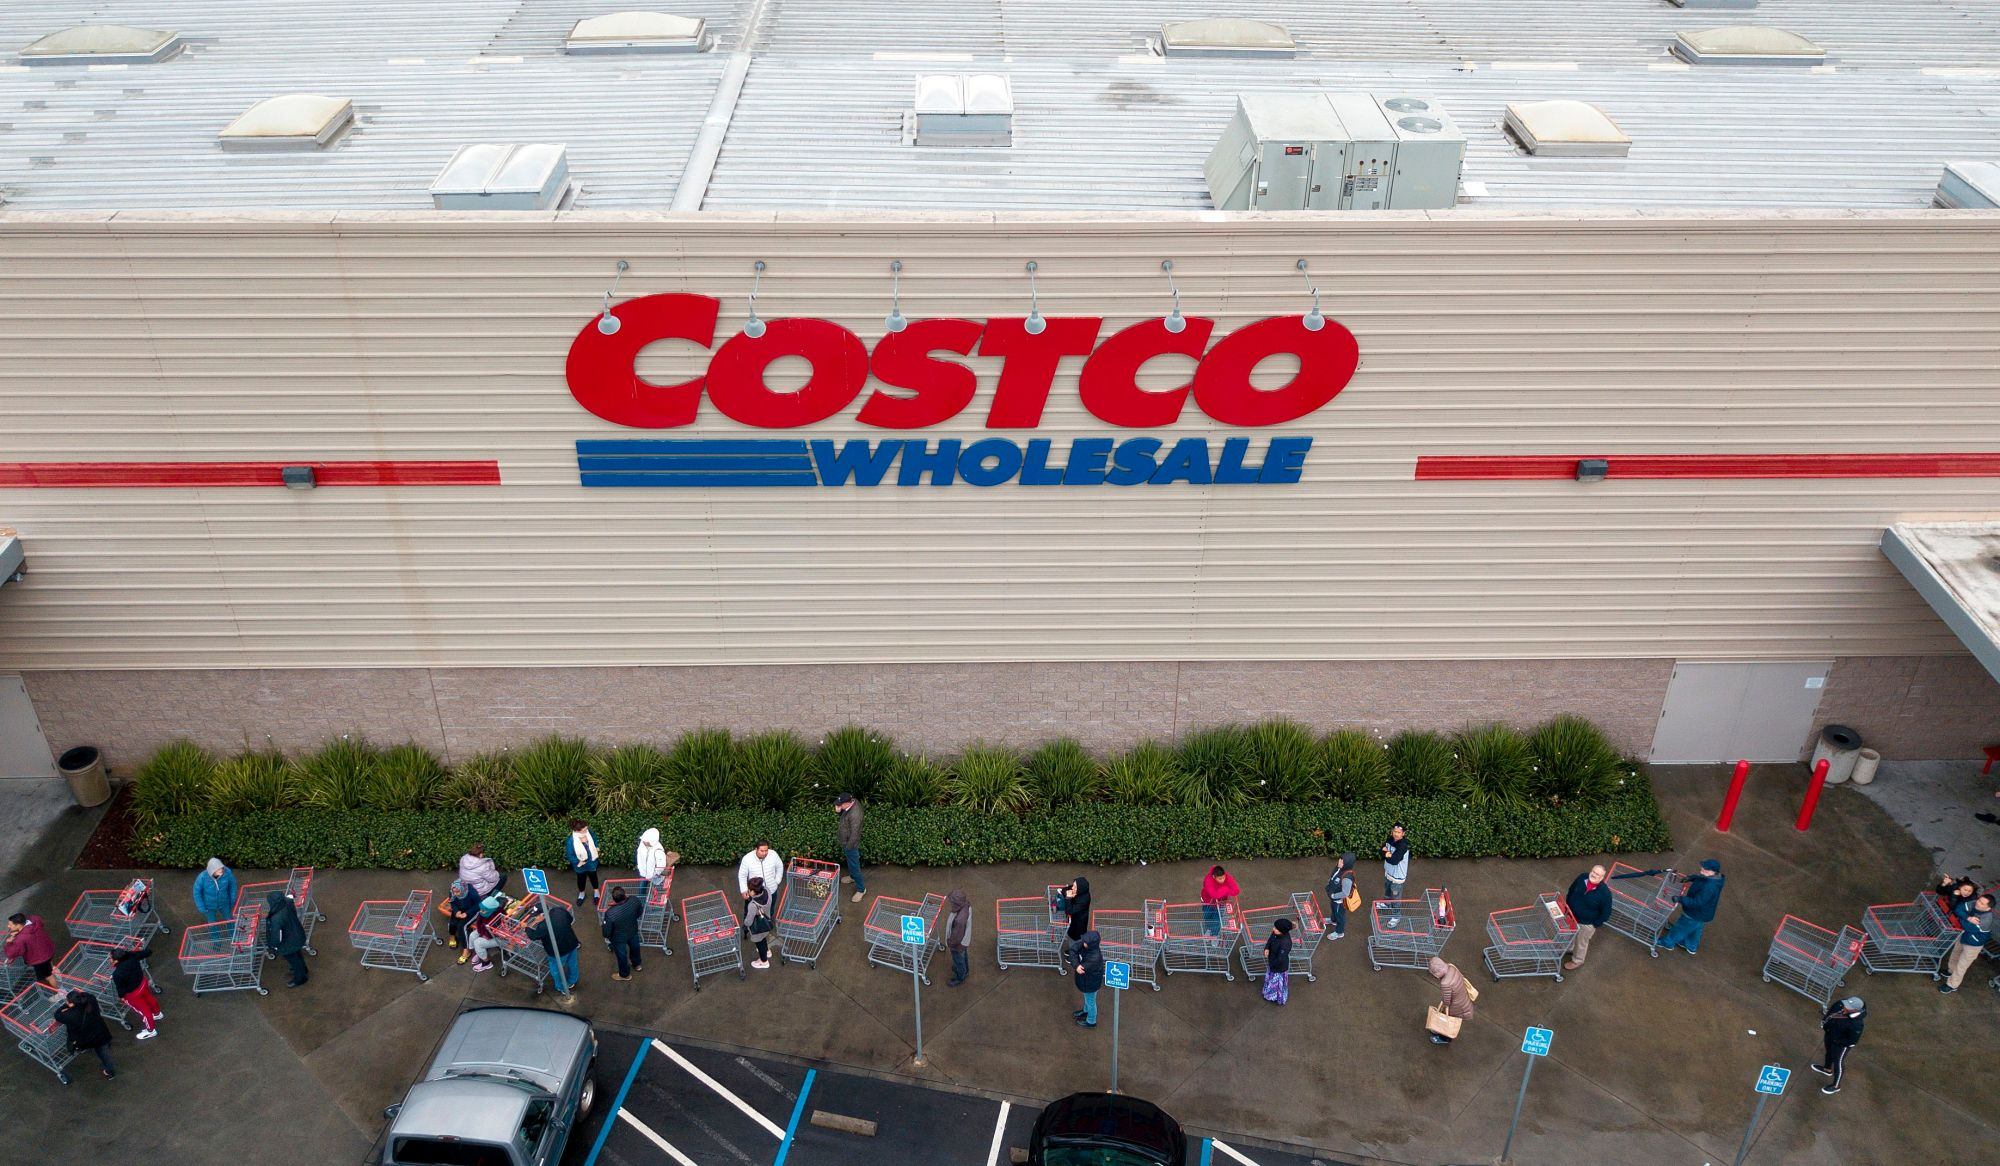 A line of shoppers snakes around a Costco store in Novato, California on March 14, 2020. (Josh Edelson/AFP via Getty Images)